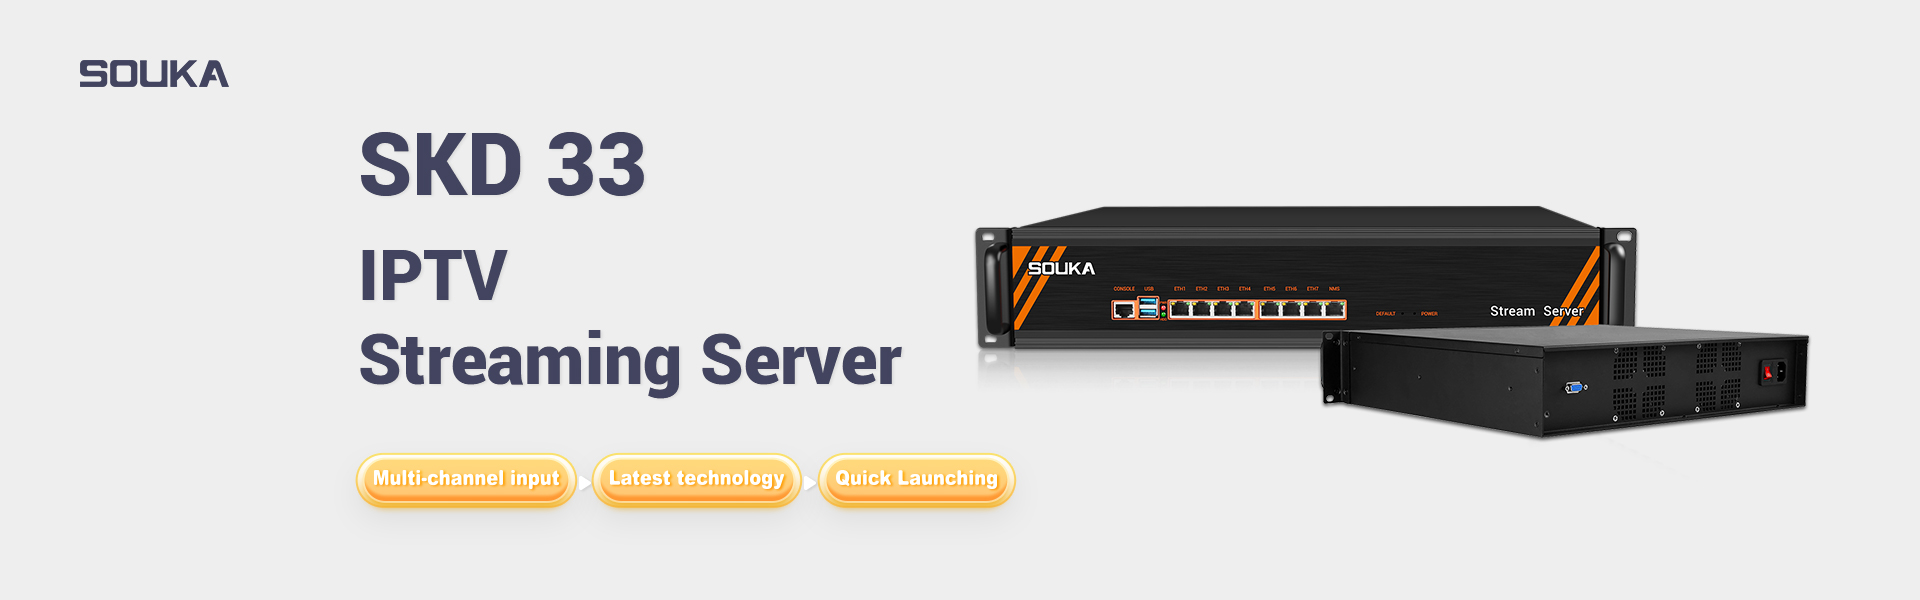 IPTV Streaming Video Server